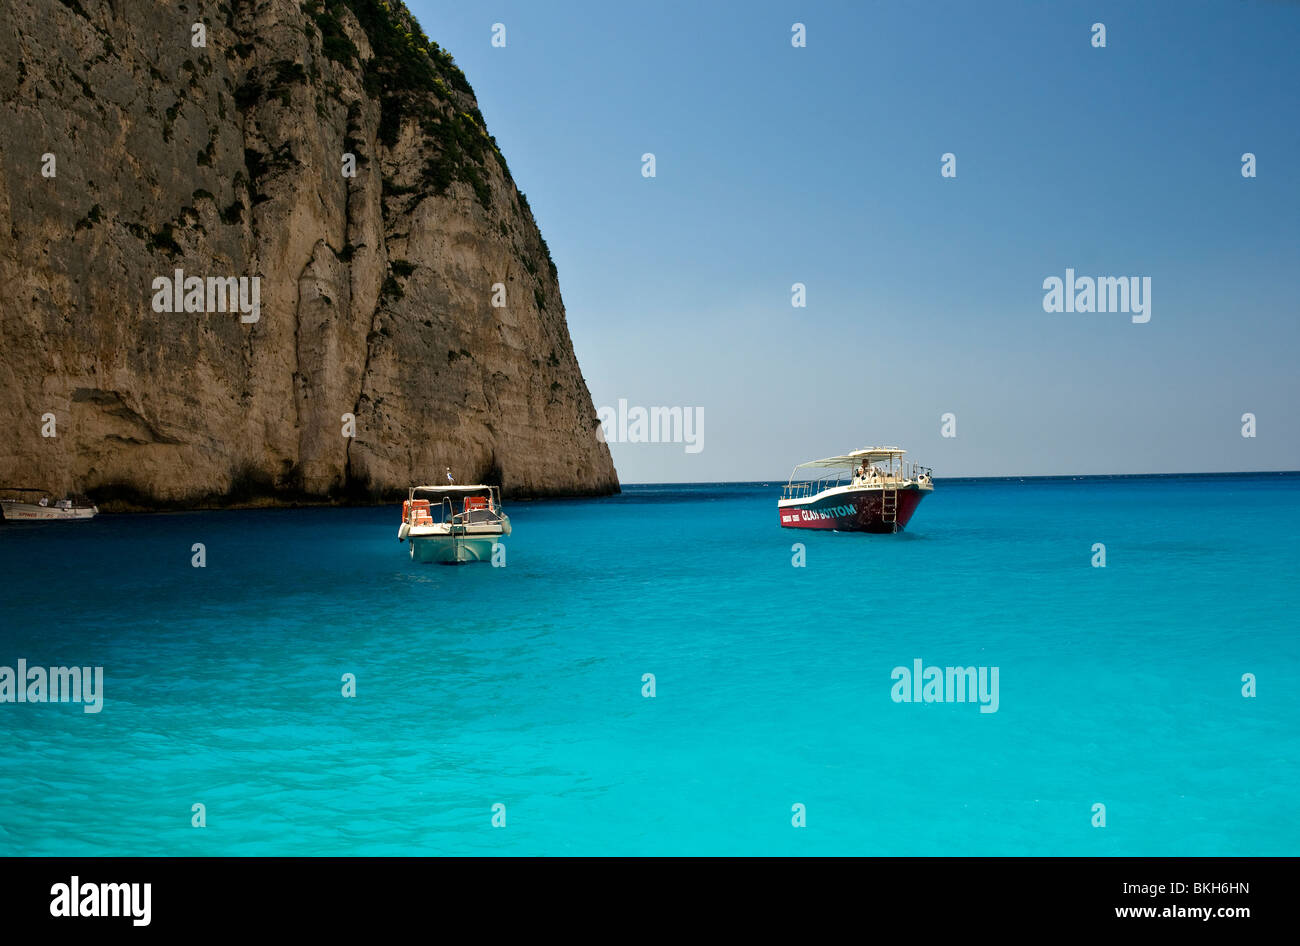 "The beautiful beach "" The wreck"" / Navagio in island of Zakynthos, ionian islands, Greece, turquoise waters of the Stock Photo"